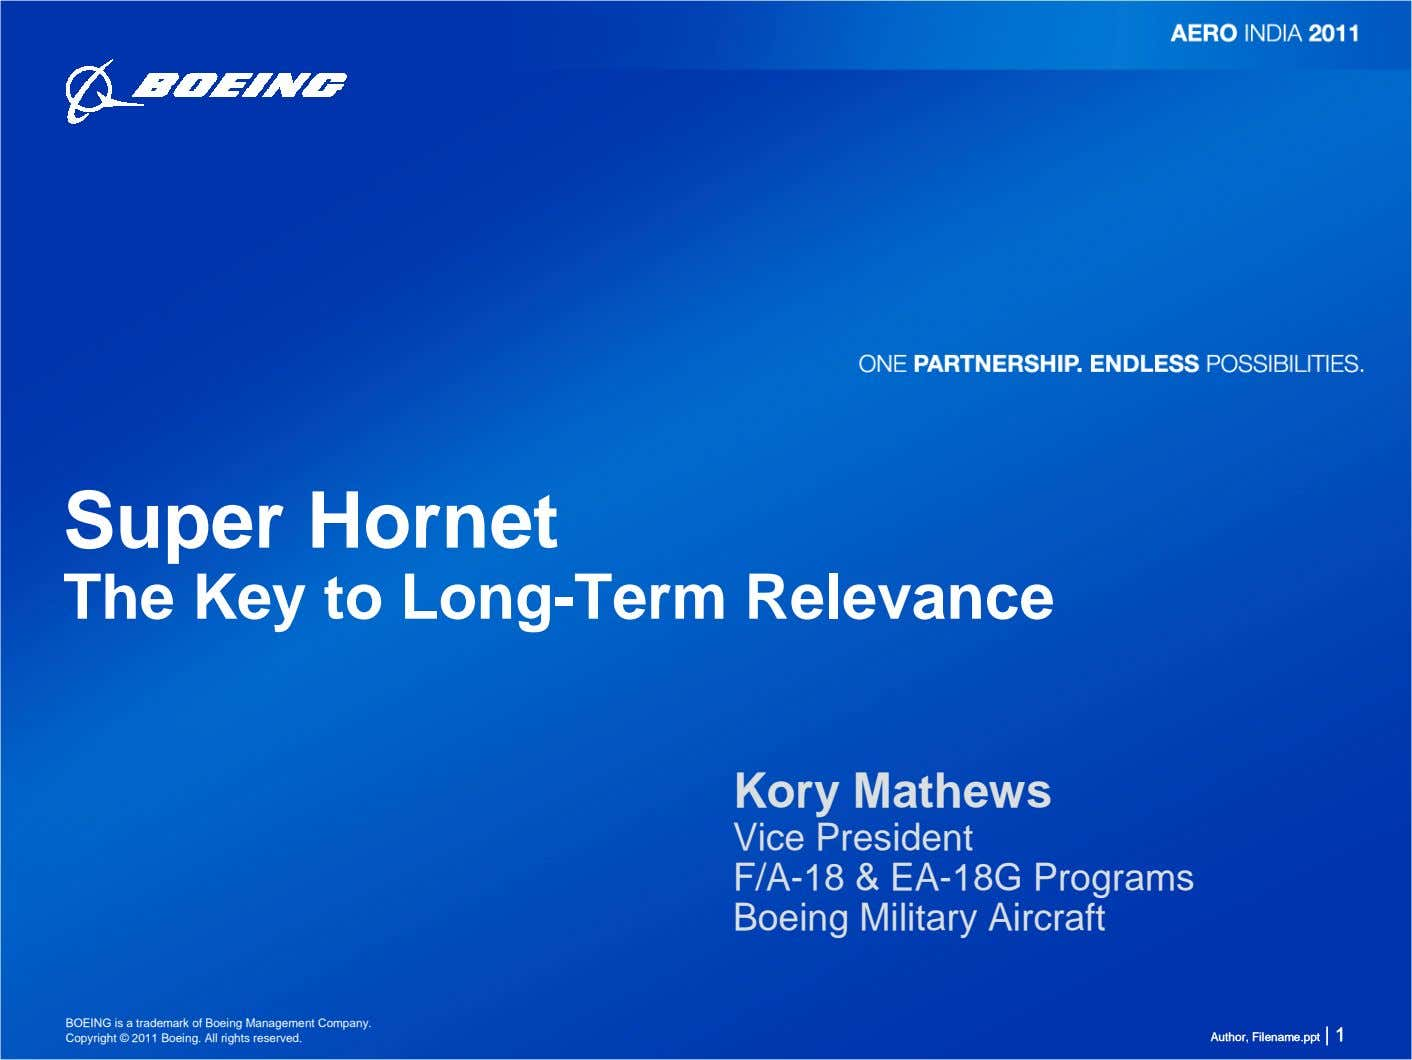 Super Hornet The Key to Long-Term Relevance Kory Mathews Vice President F/A-18 & EA-18G Programs